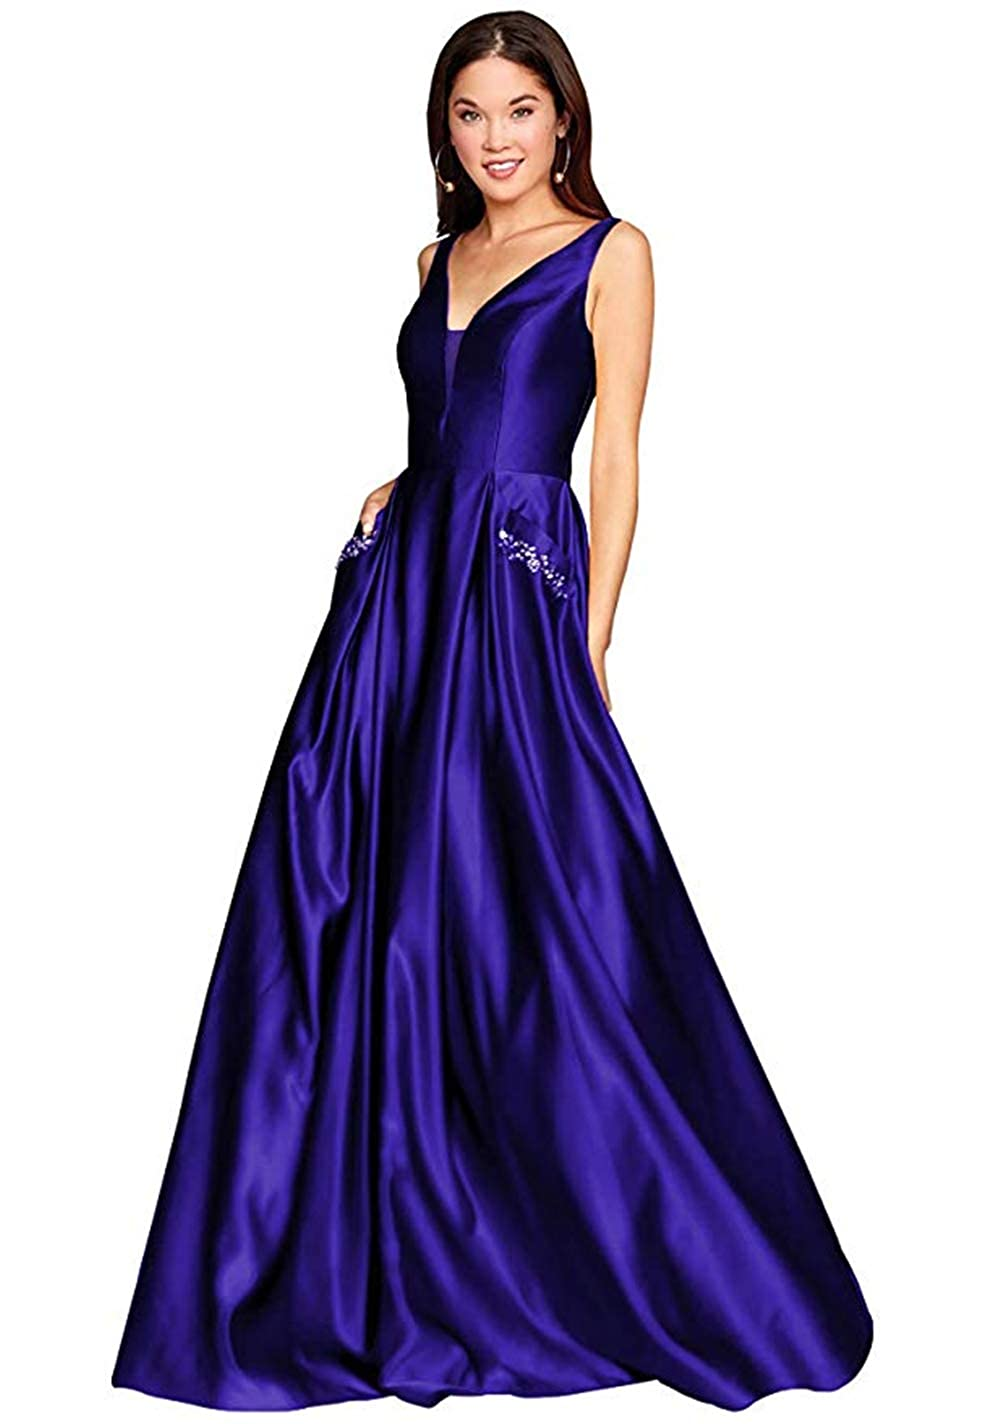 01royalbluee PROMNOVAS Women's V Neck Backless Beaded Satin Prom Dress Long Formal Evening Gown with Pockets